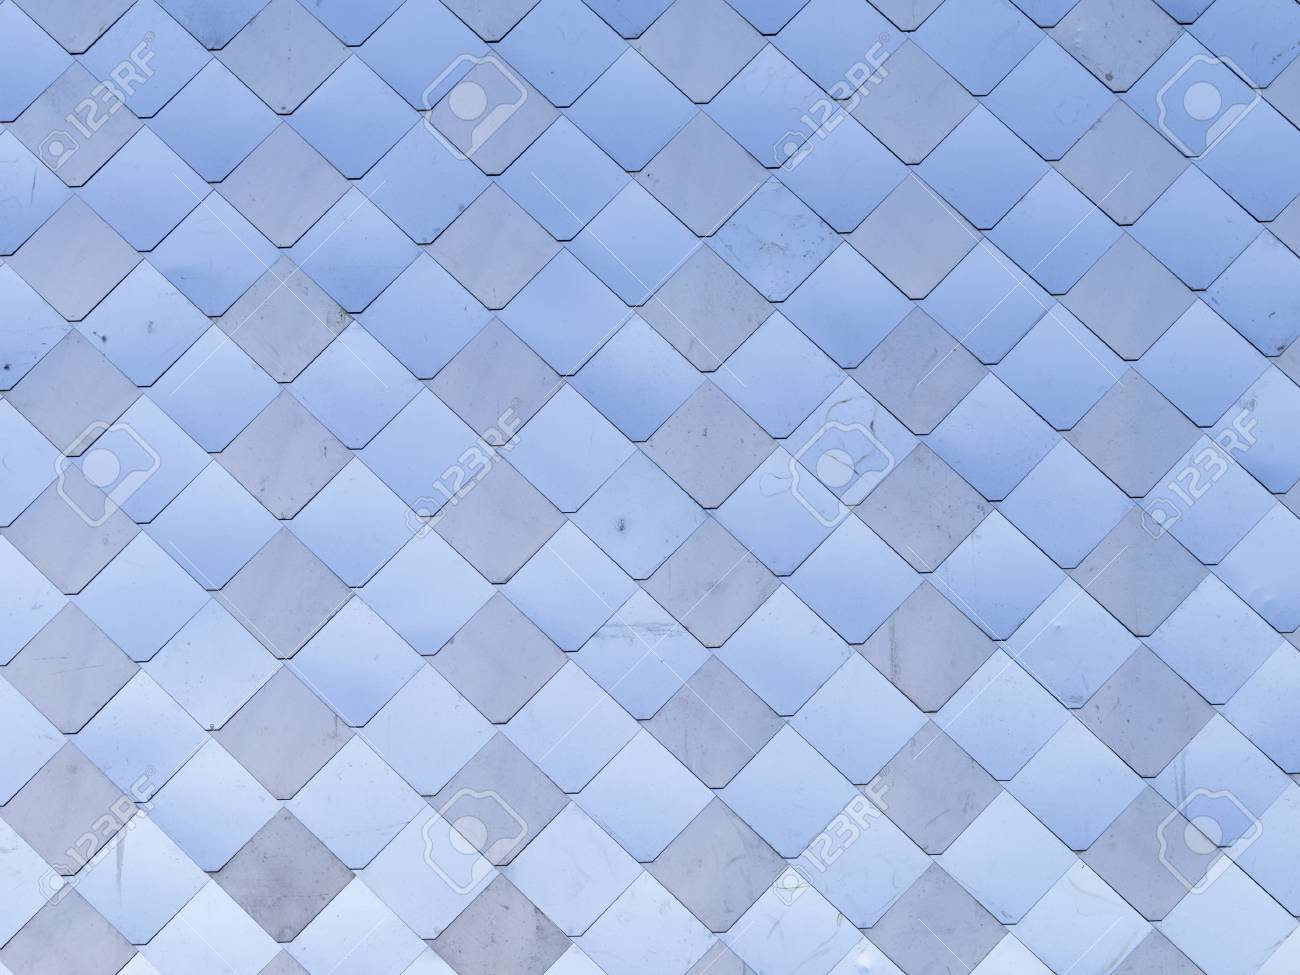 Old, Dirty Aluminum Metal Wall Panel With Rhombus-like Scales ...